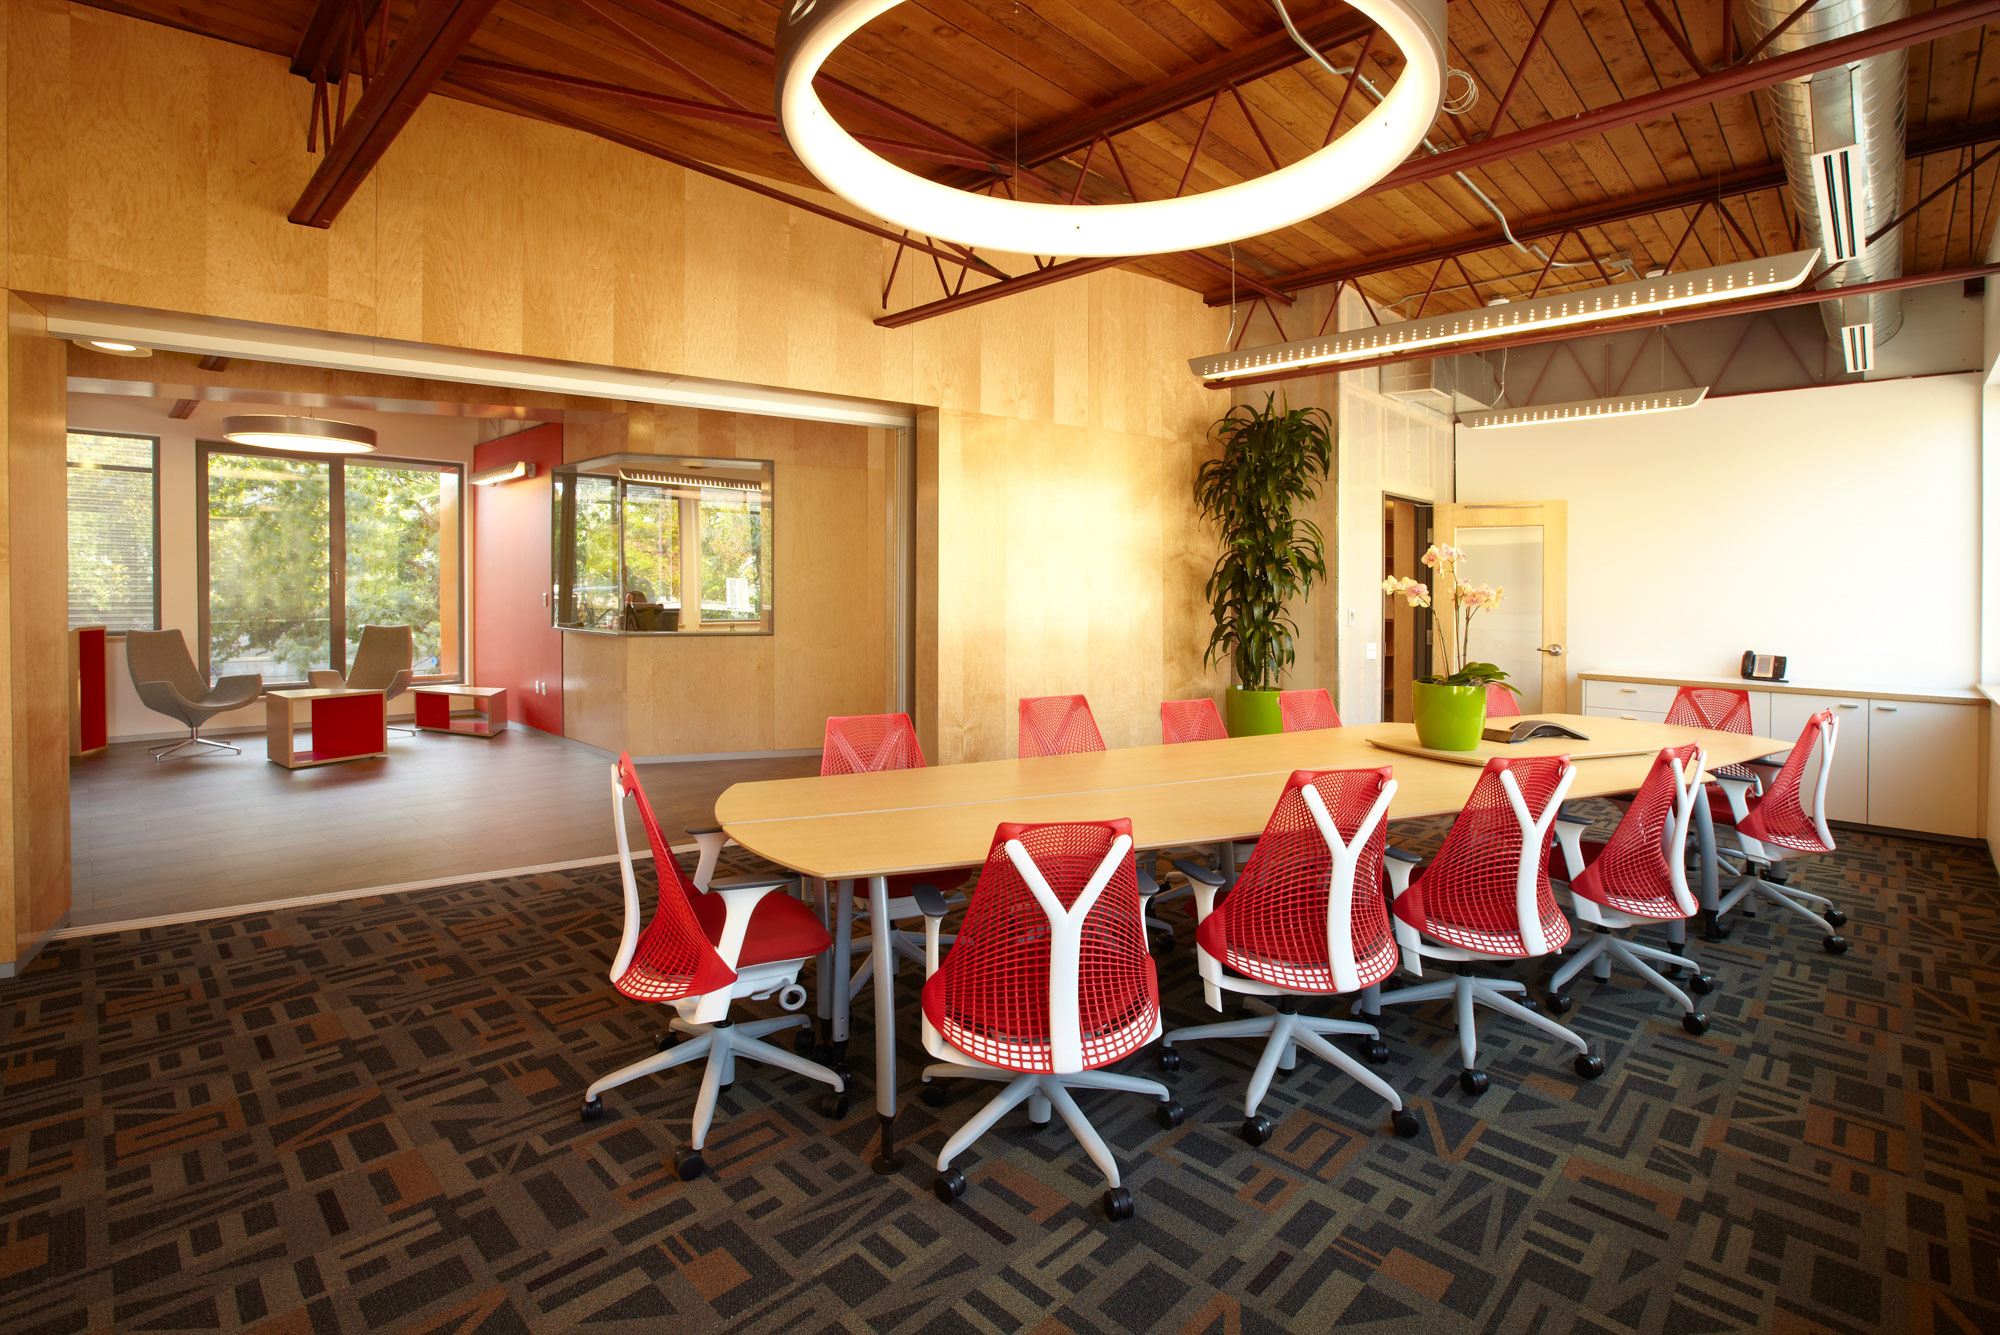 PNWP_COMMERCIAL_MEETINGROOMRED_SMALL2